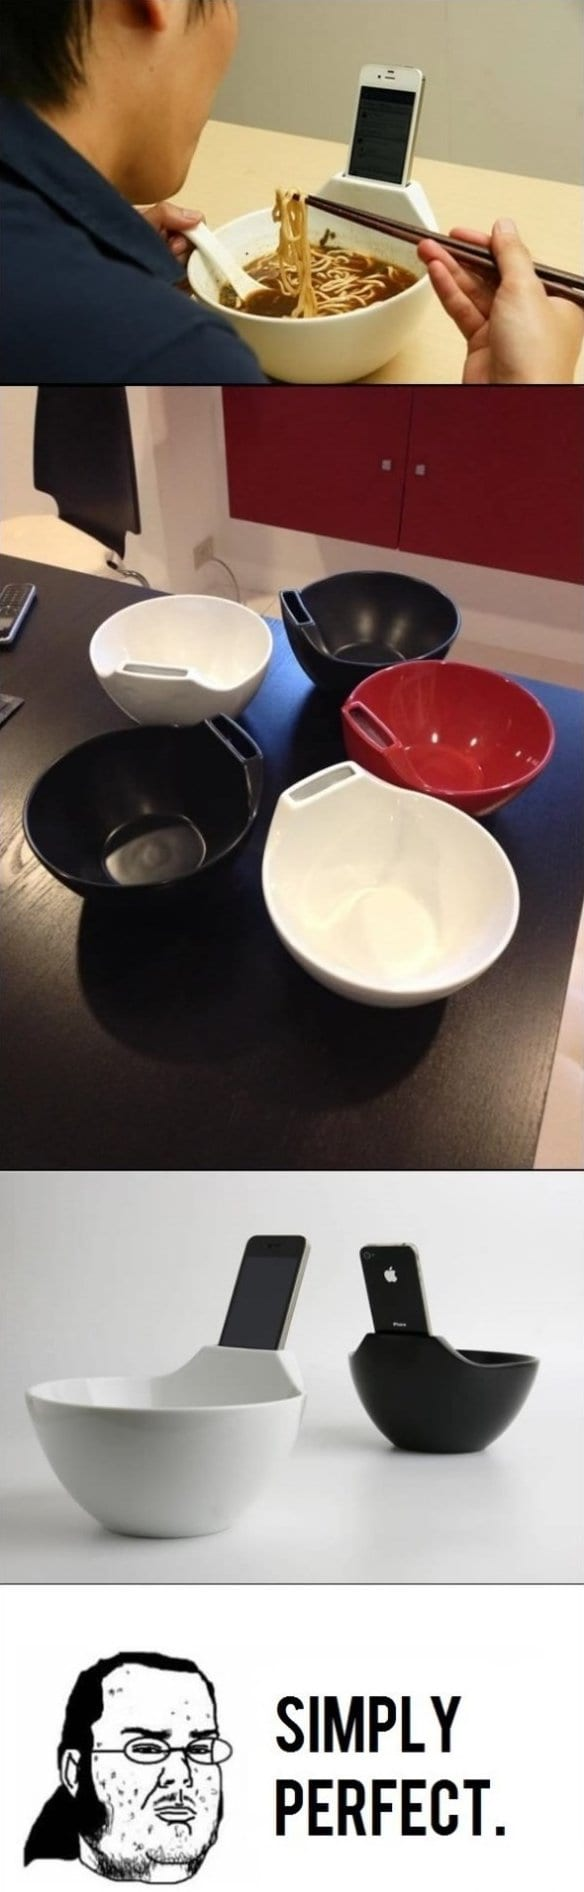 funny-image-2014-the-perfect-bowl-for-hipsters